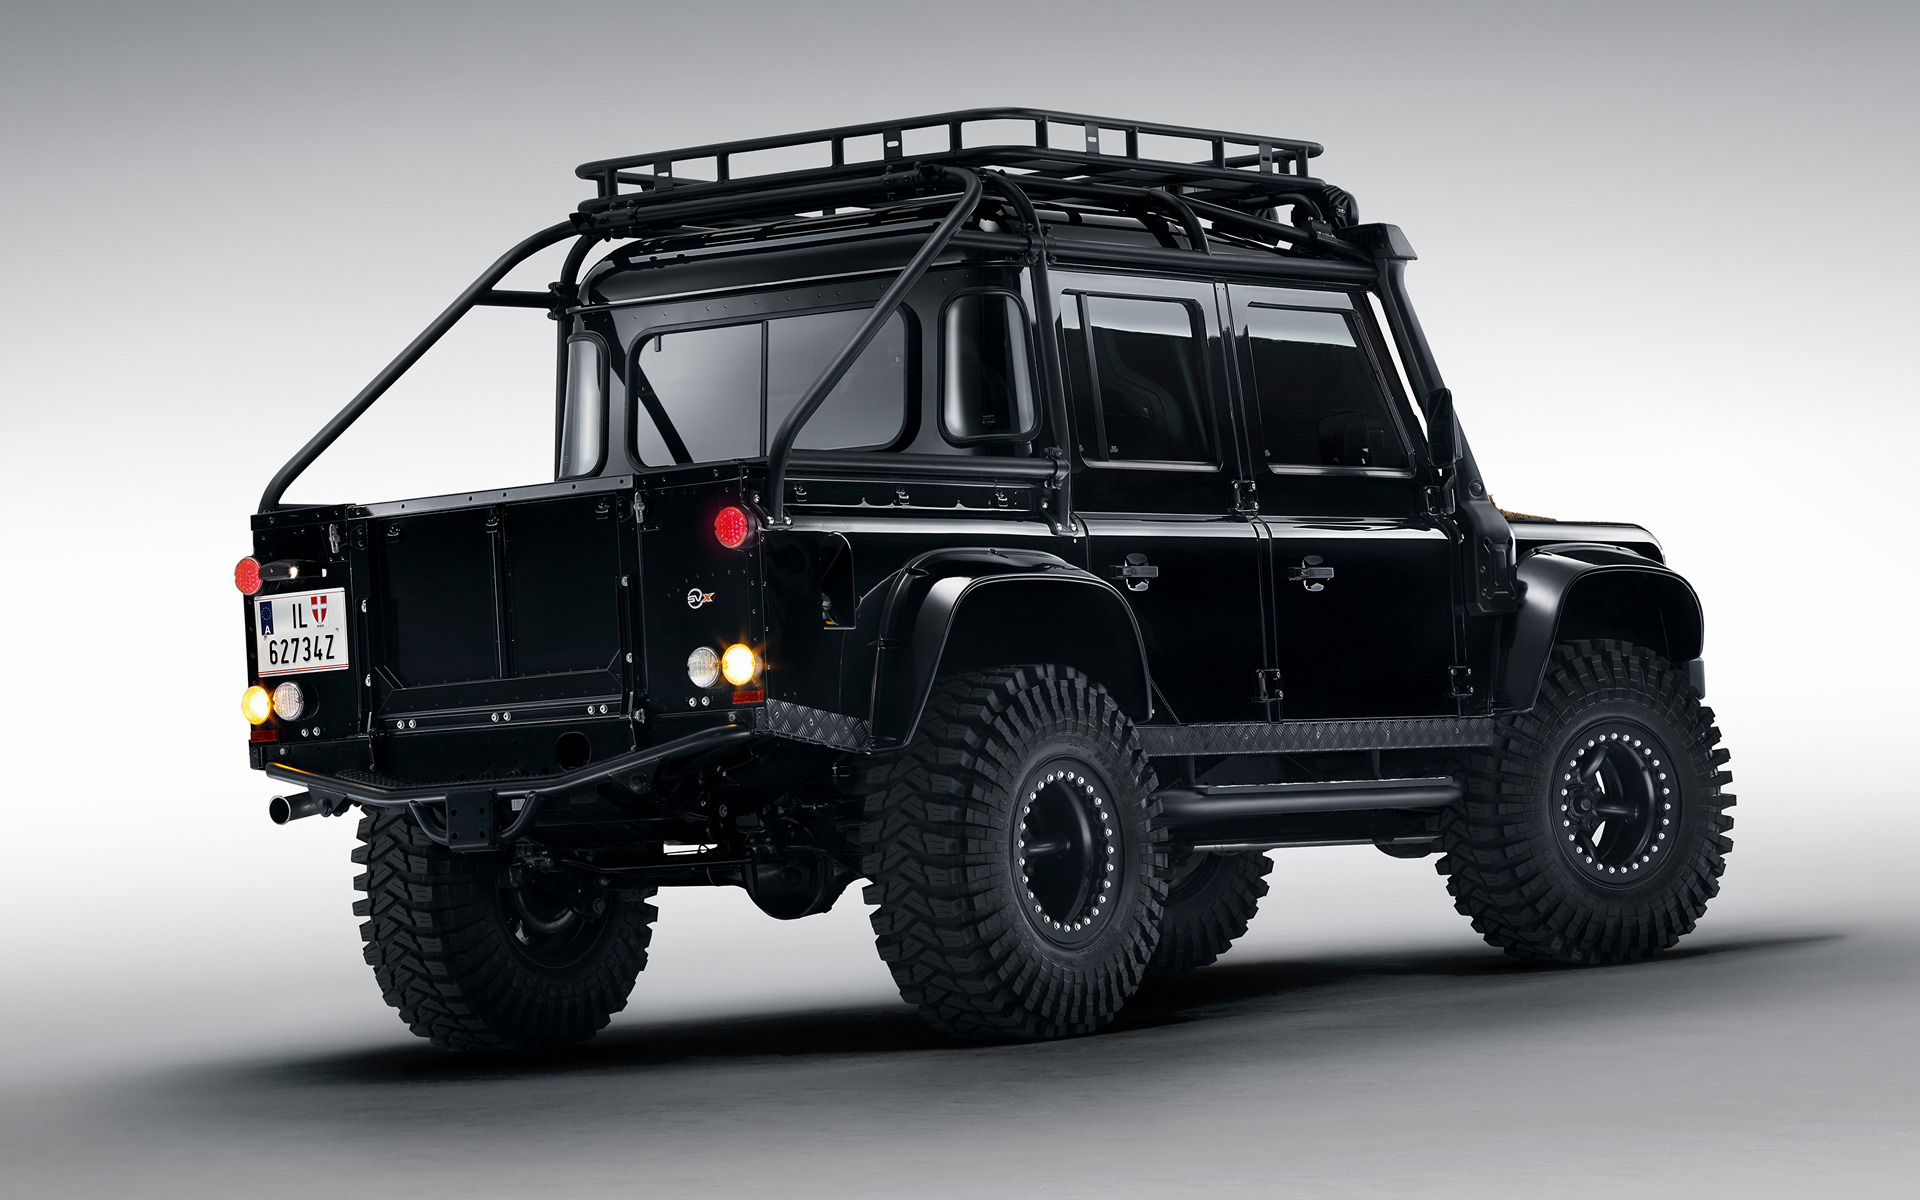 2015 Land Rover Defender 007 Spectre - Wallpapers and HD ...